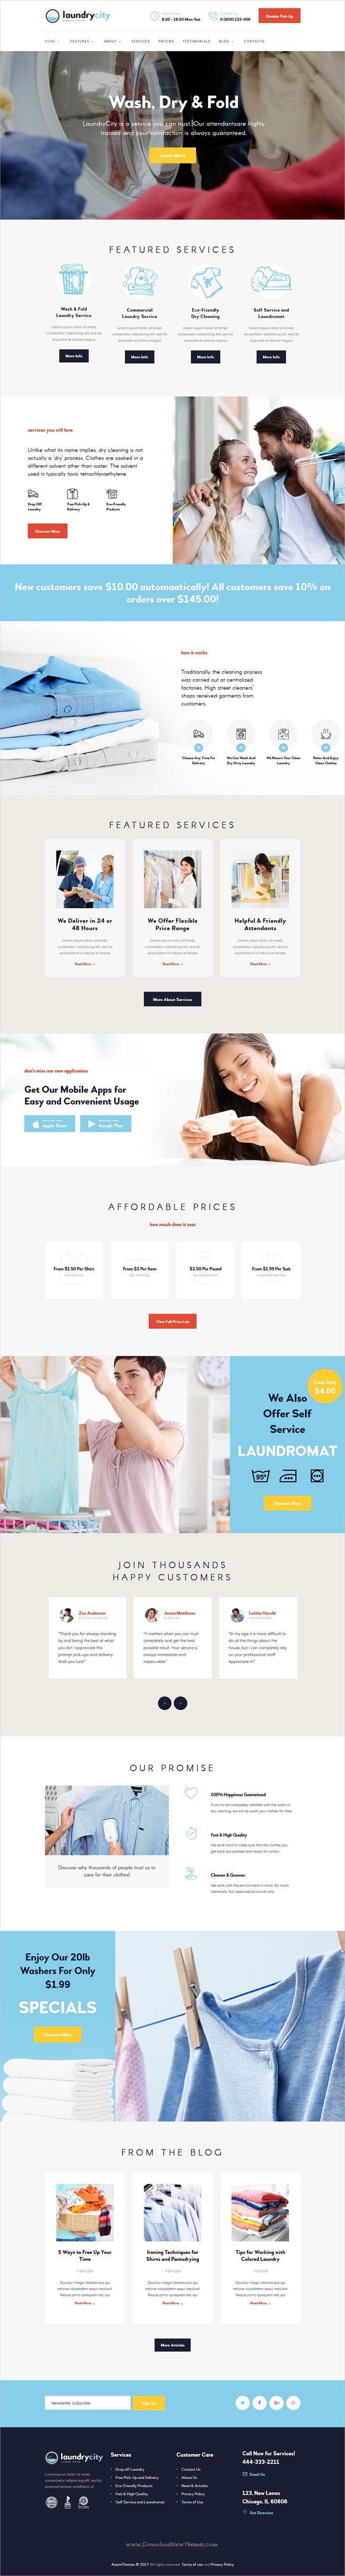 Laundry city is a modern & functional design responsive #WordPress theme for #cleaning and #laundry service business website download now➩ https://themeforest.net/item/laundry-city-dry-cleaning-laundry-service/19452973?ref=Datasata